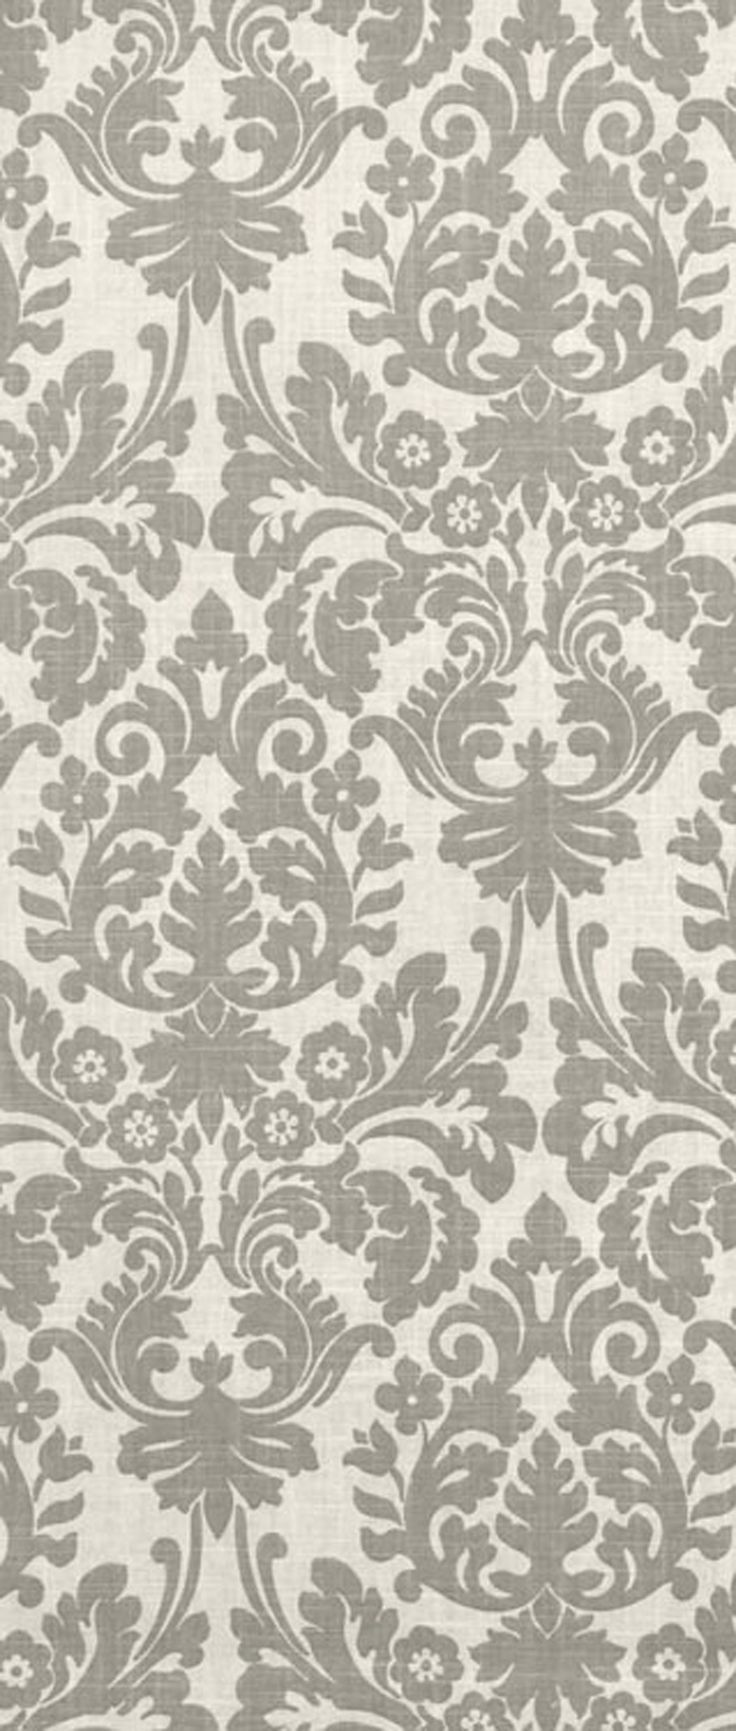 Waverly Essence Smoke Gray Fabric 23 95 Per Yard Damask